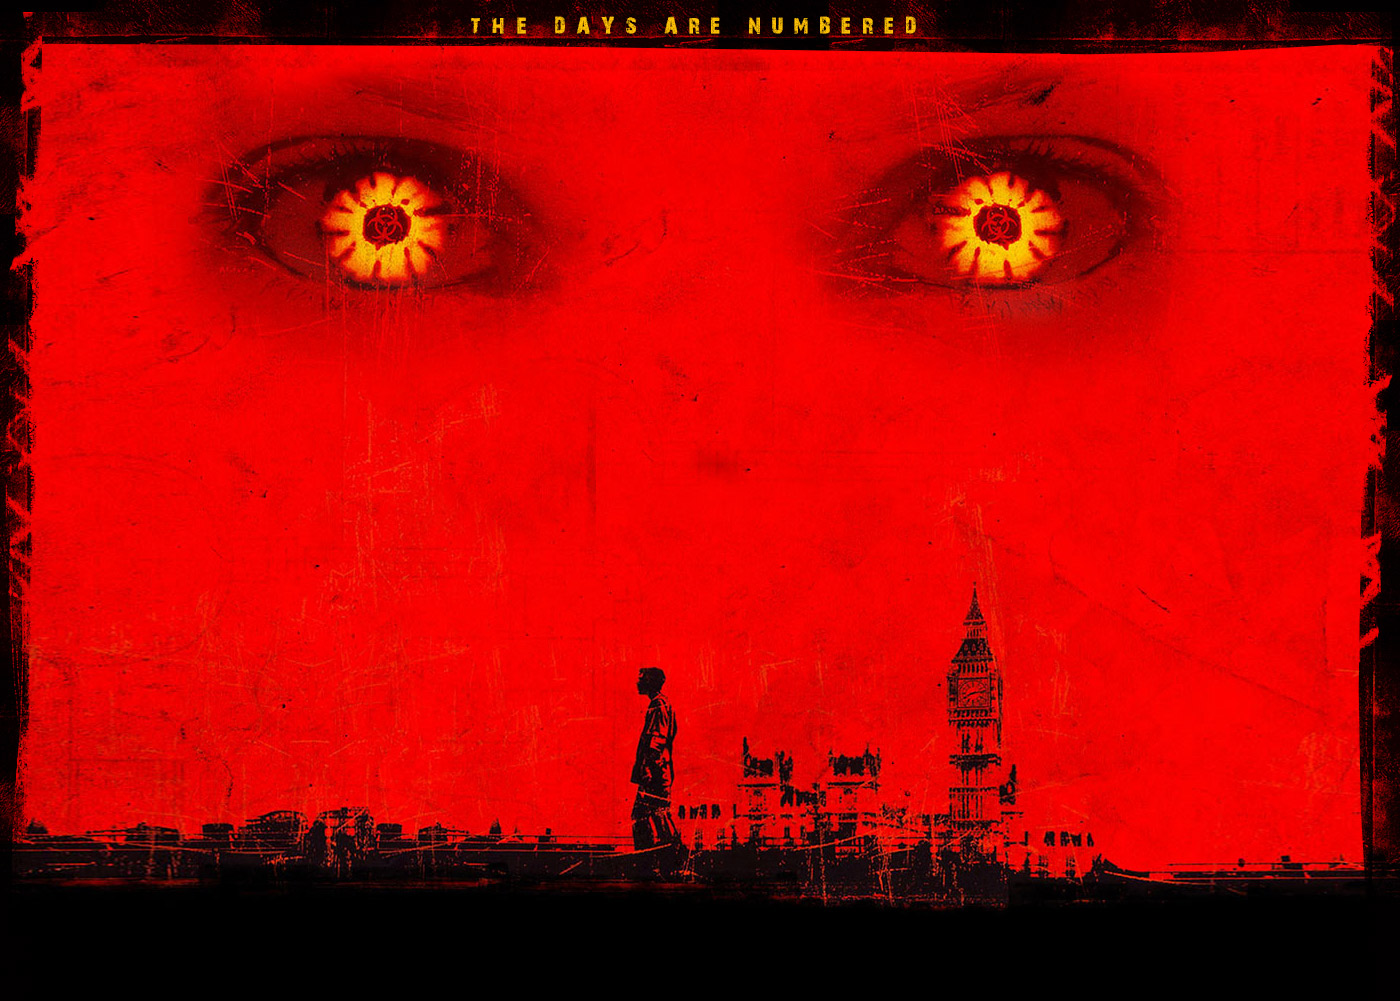 Secret Cinema Presents 28 Days Later